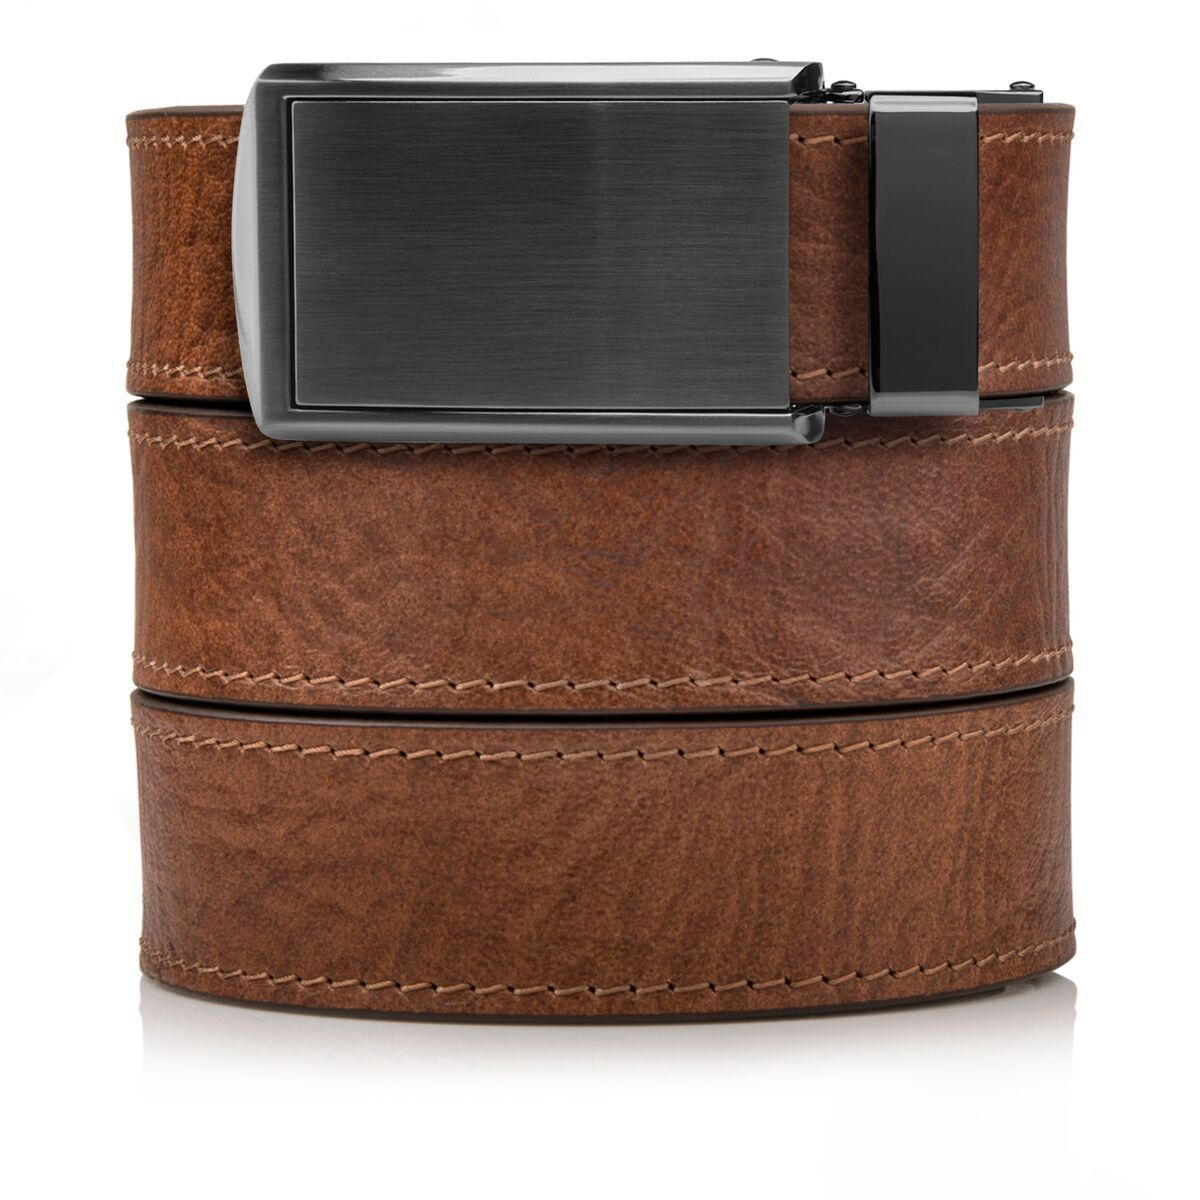 SlideBelts Factory Seconds Walnut Top Grain Ratchet Belt